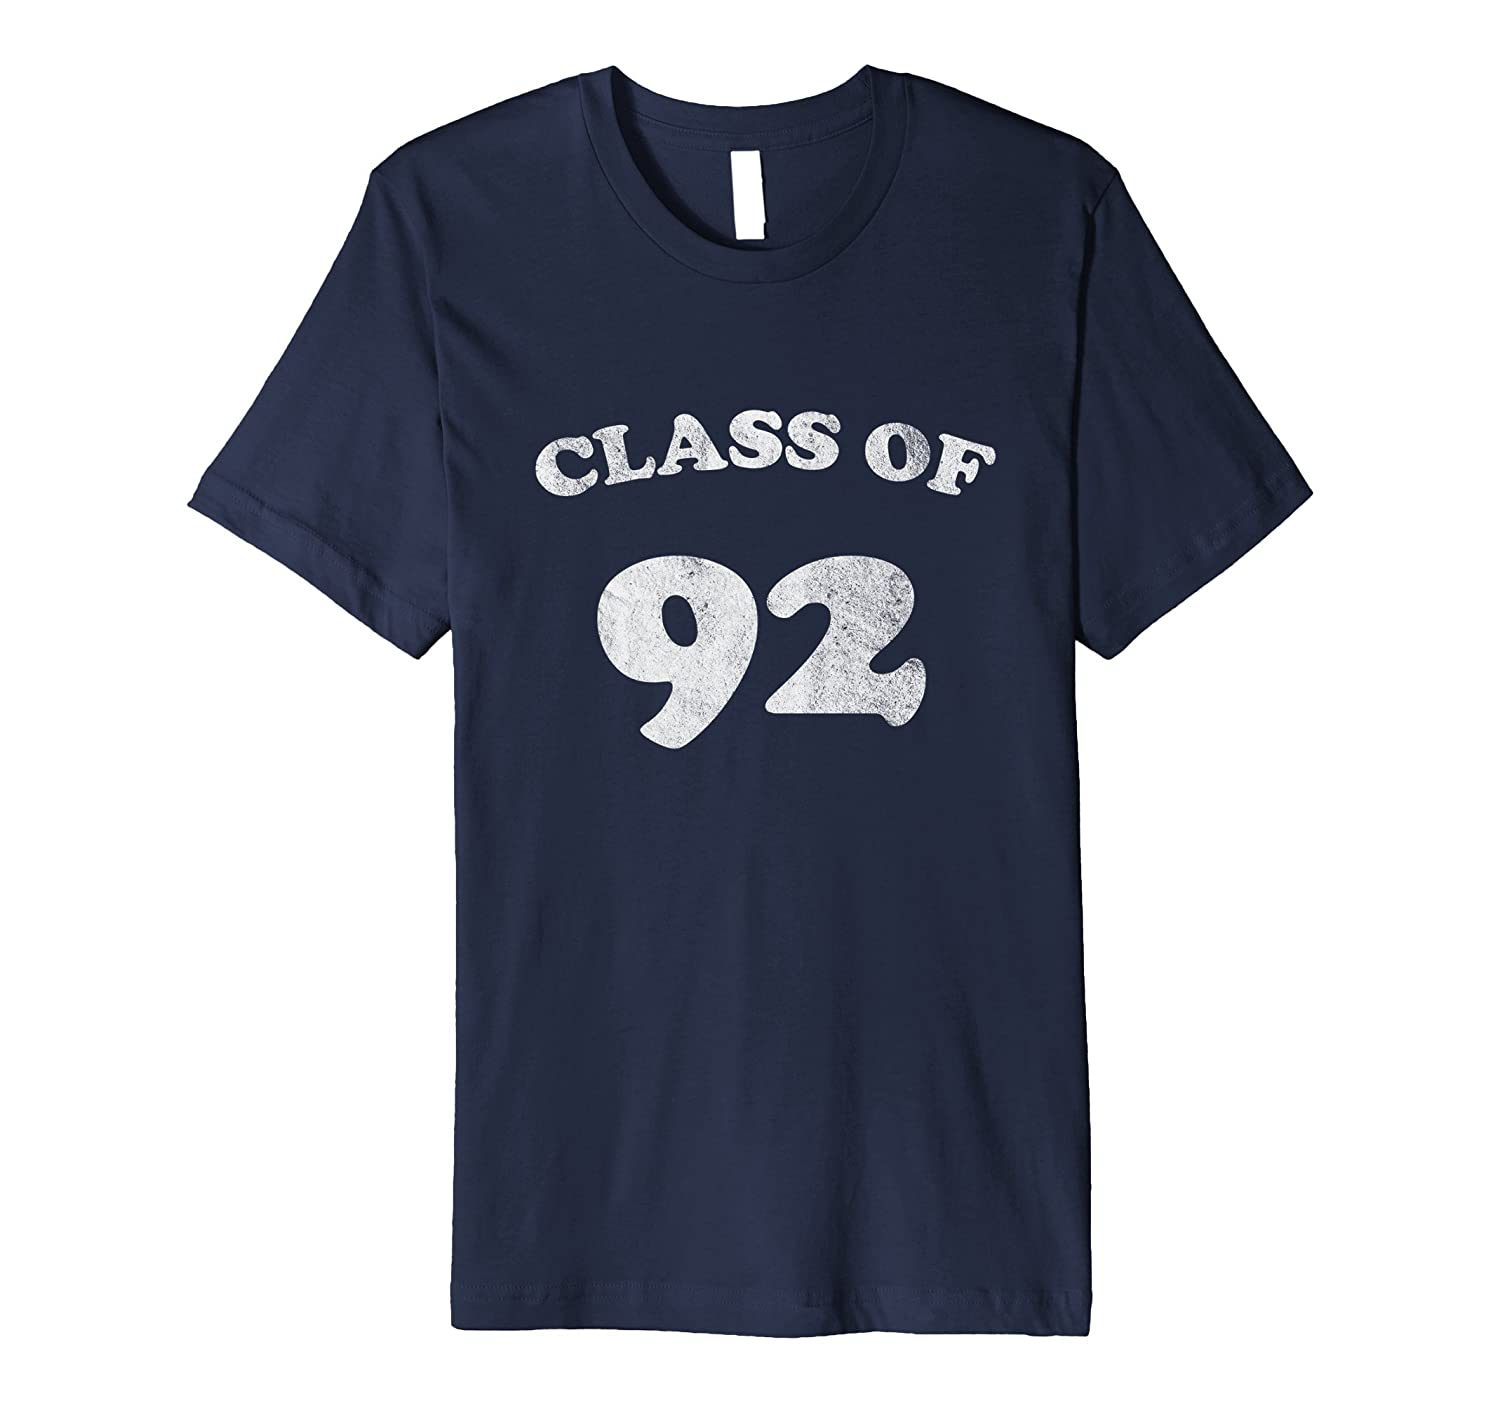 90s Shirt Class of 92 Retro Vintage Nineties 90s T-Shirt-PL